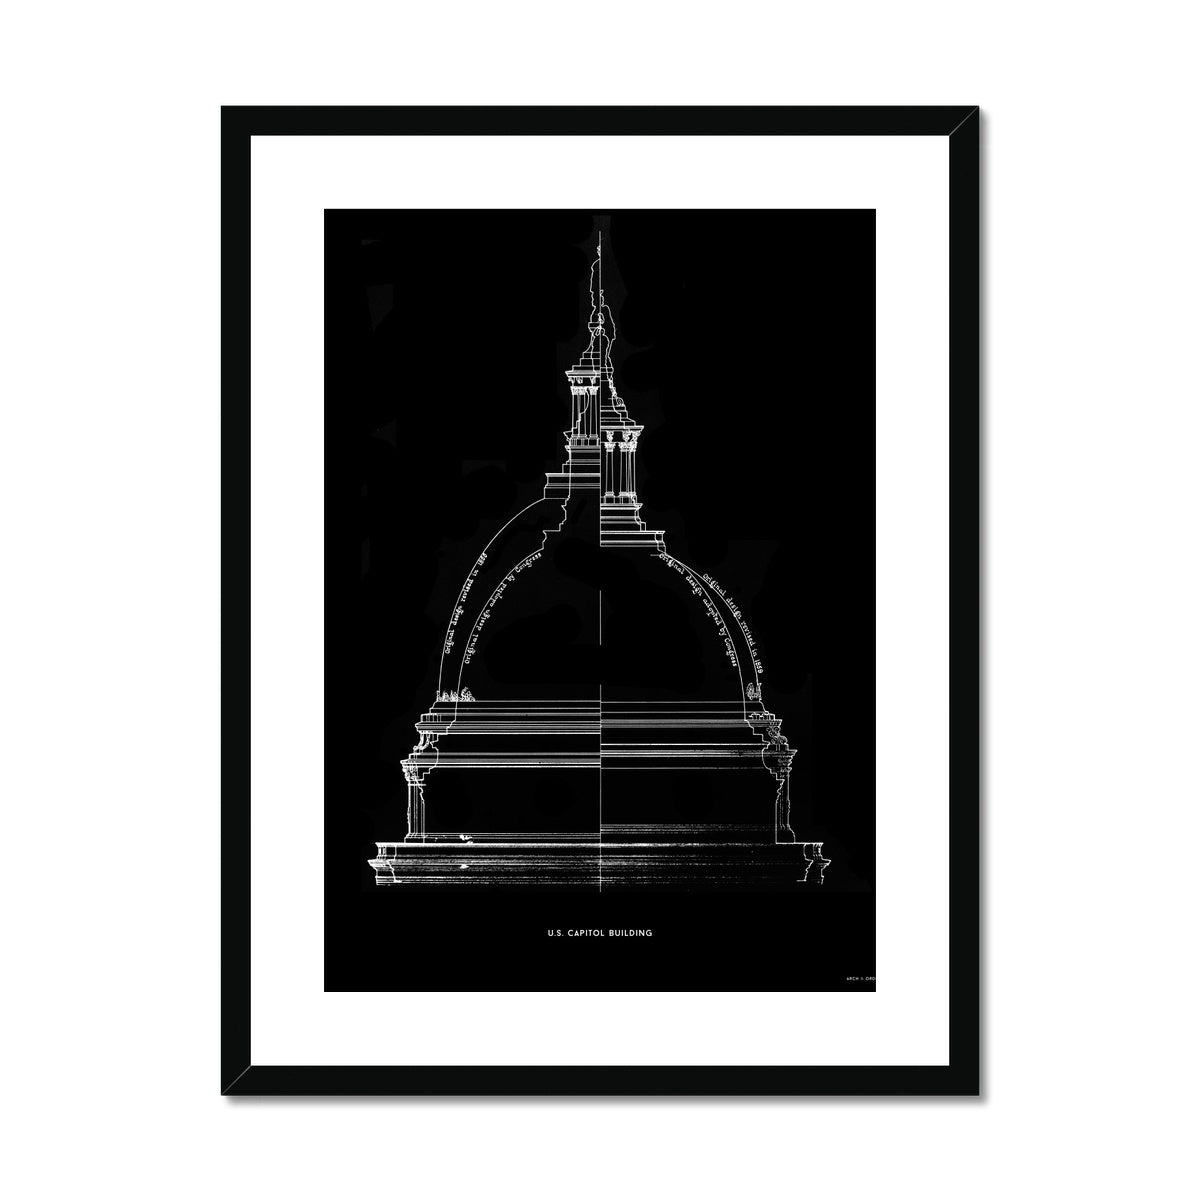 The U.S. Capitol Building - 1851 Dome Comparison - Black -  Framed & Mounted Print